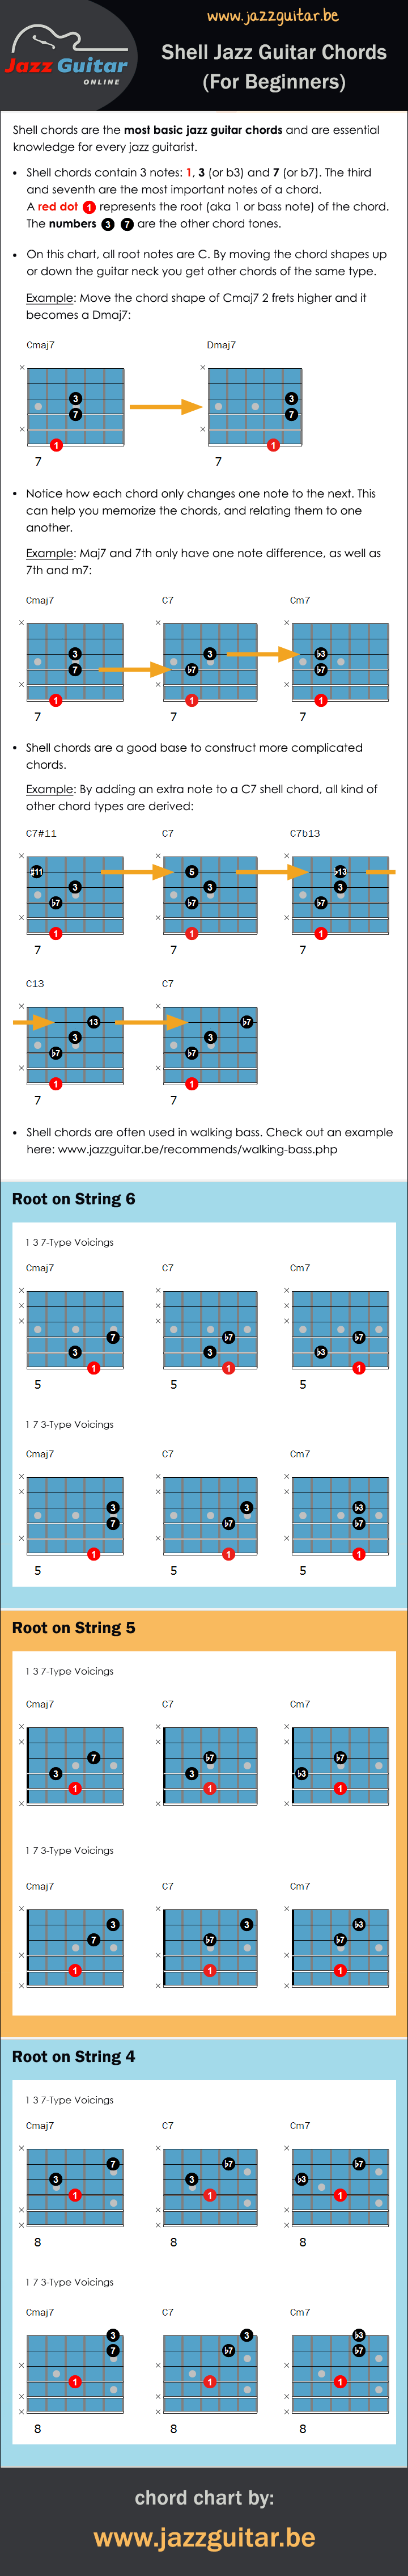 A chord chart with shell chords shell chords are the most basic a chord chart with shell chords shell chords are the most basic jazz guitar chords hexwebz Gallery